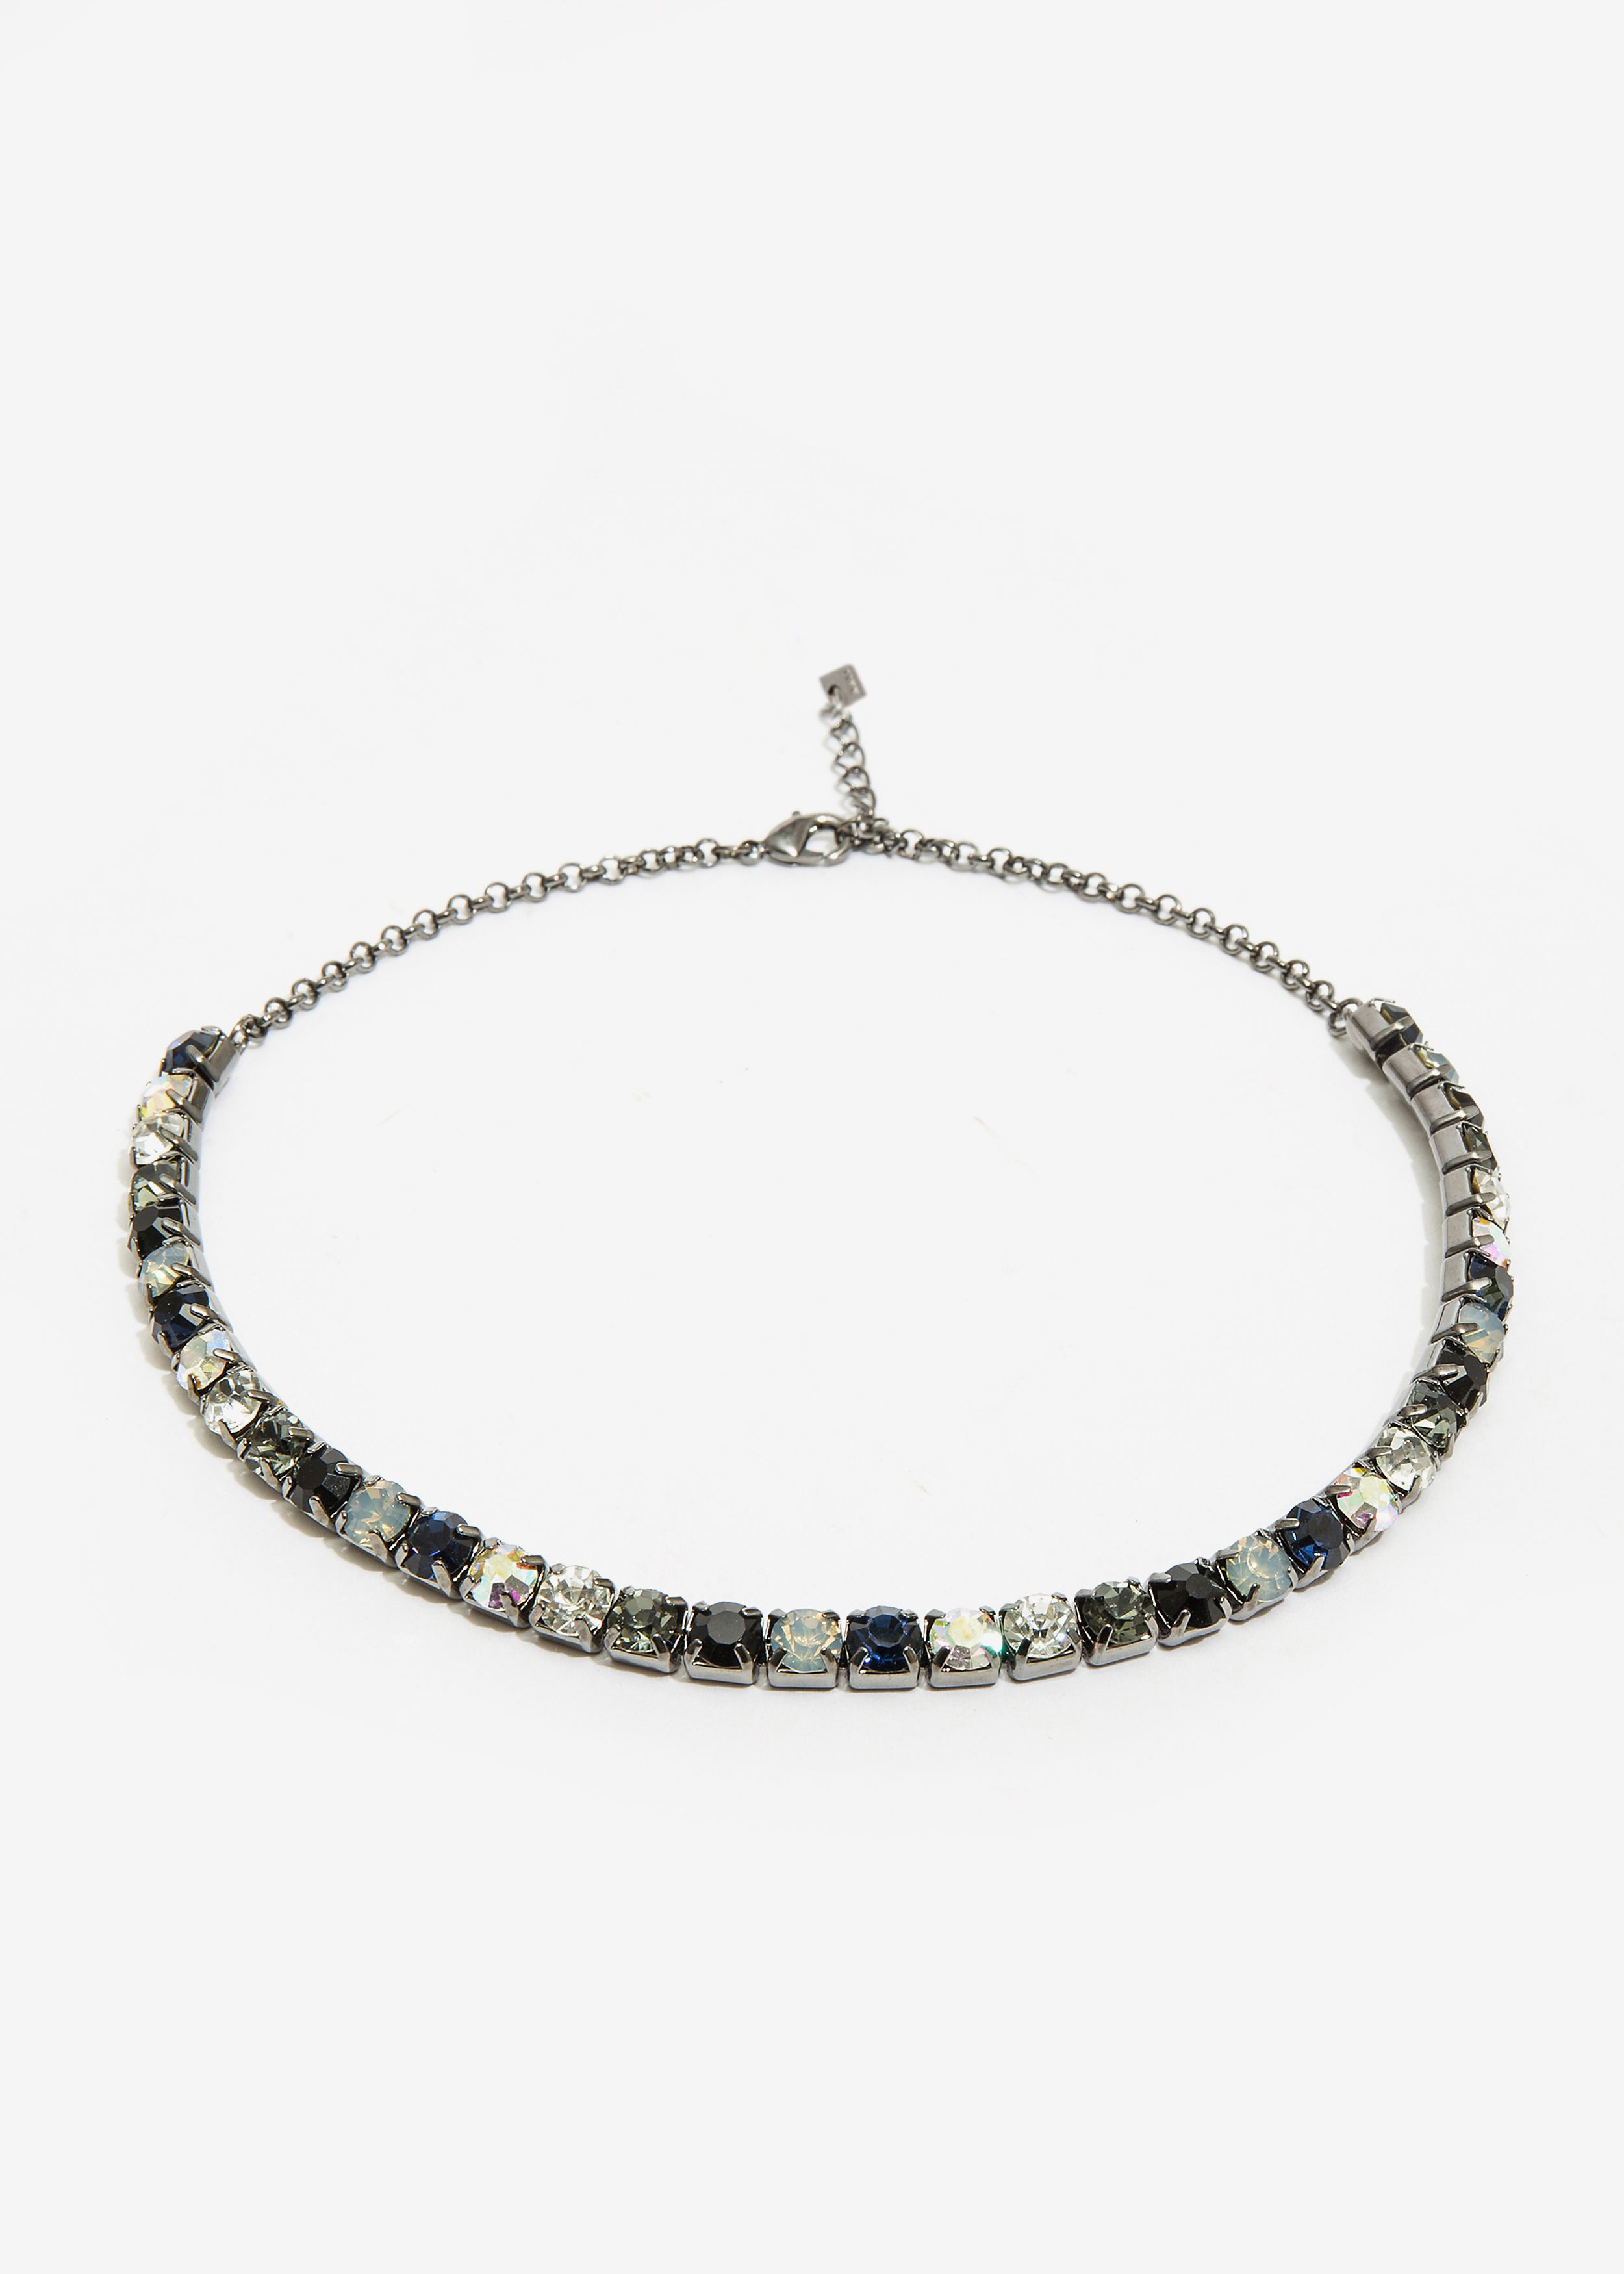 COLLANA GIROCOLLO ORO E CRISTALLI BLACK DIAMOND